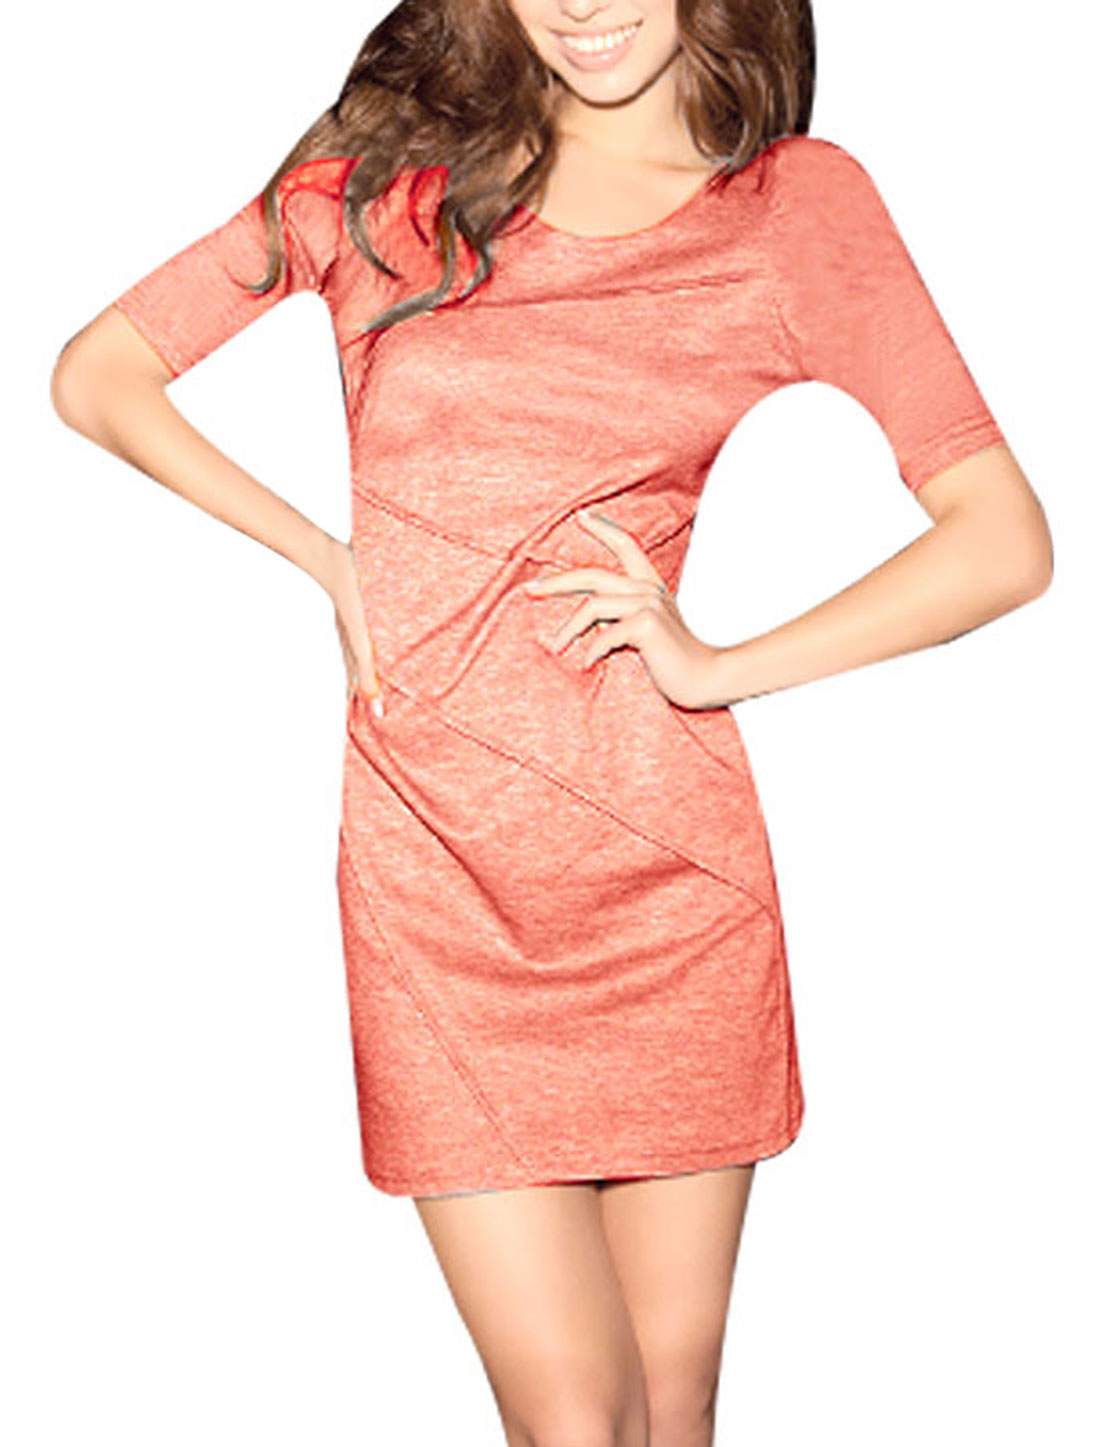 XS Ladies Scoop Neck Half Sleeve Zipper Back Sheath Dress Salmon Pink